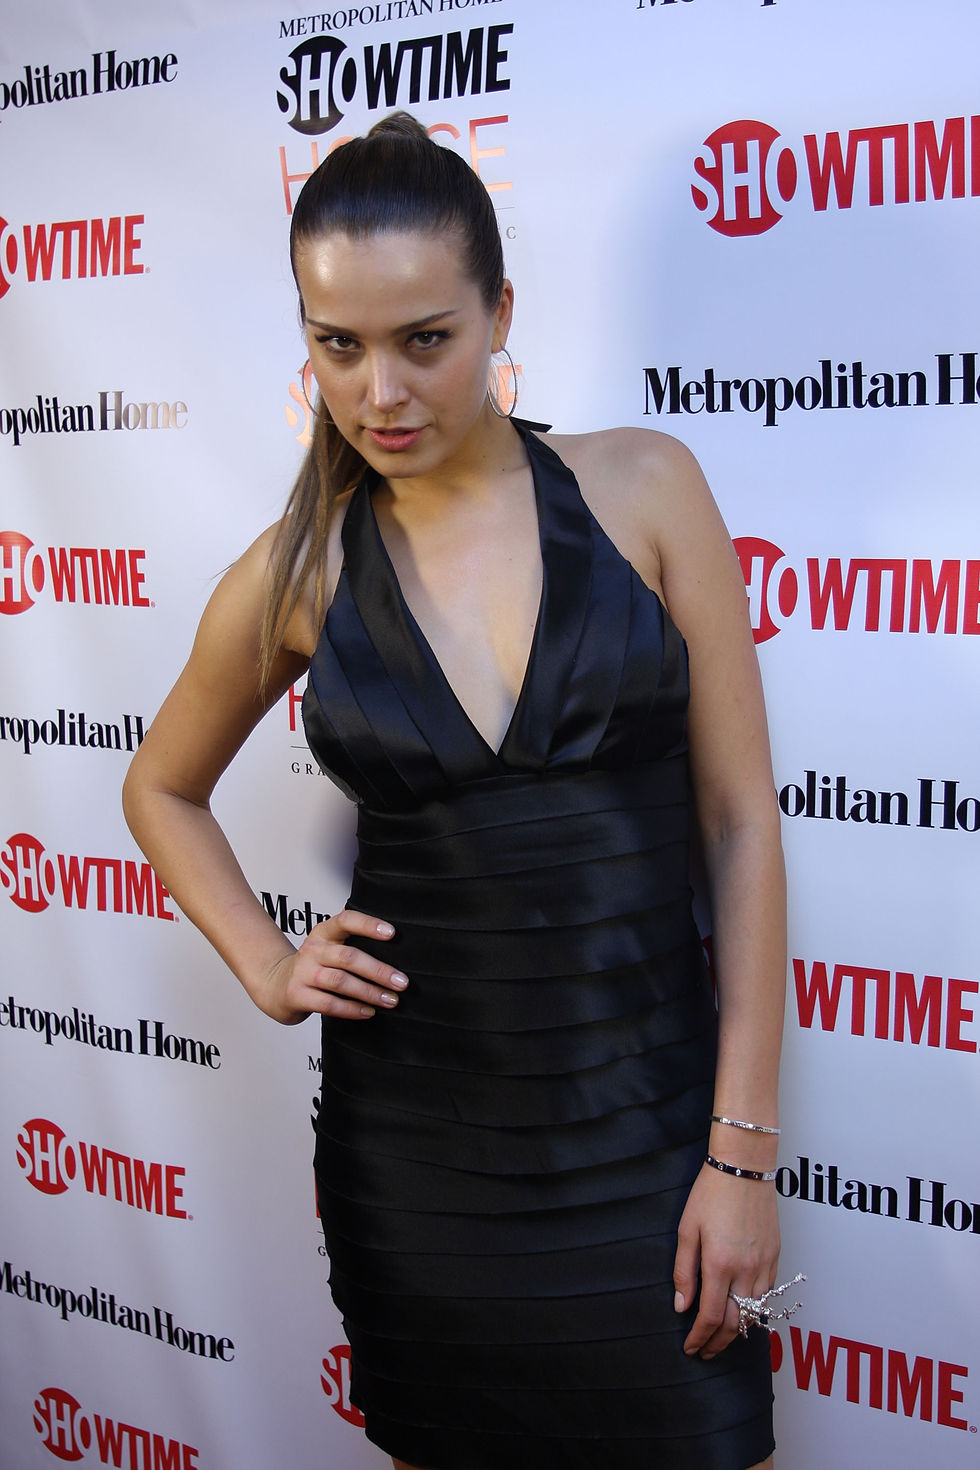 petra-nemcova-metropolitans-home-showtime-house-opening-in-new-york-city-01